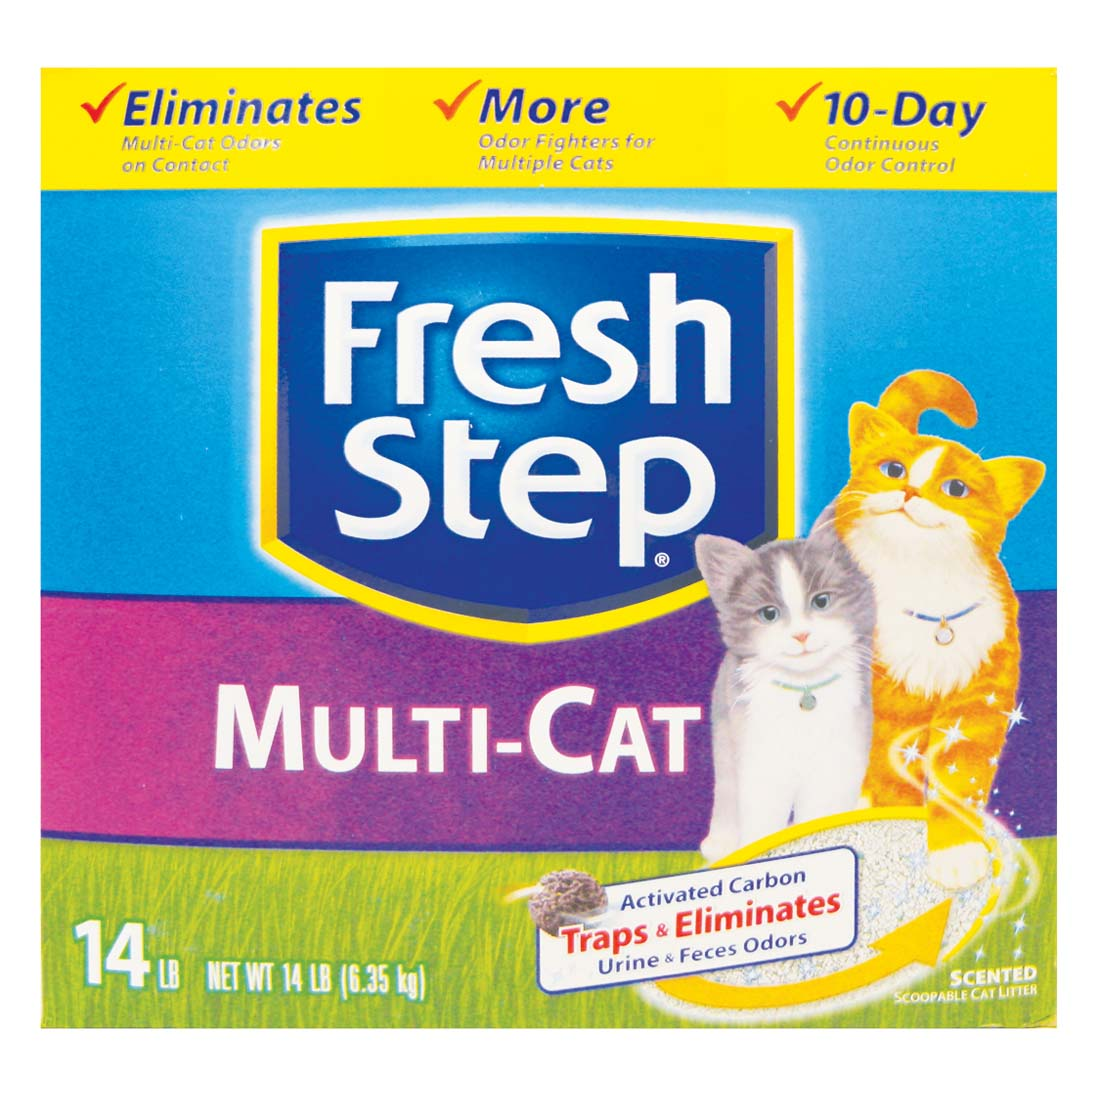 View FRESH STEP CAT LITTER 14 LB BOX MULTI-CAT SCENTED